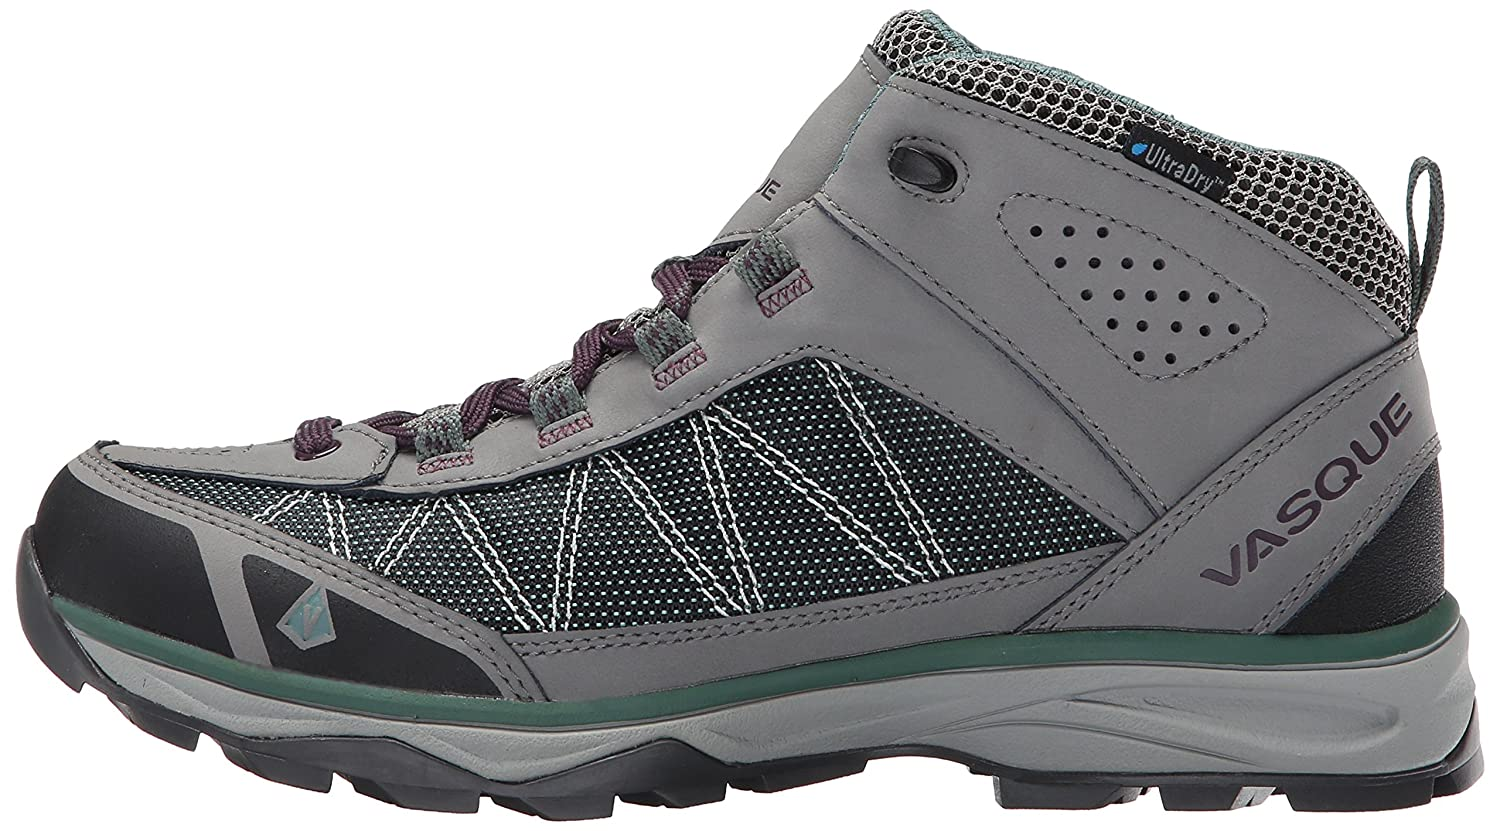 Vasque Women's Monolith Hiking Boot Pine B00ZUY8Y40 8.5 B(M) US|Gray/Silver Pine Boot 3df205